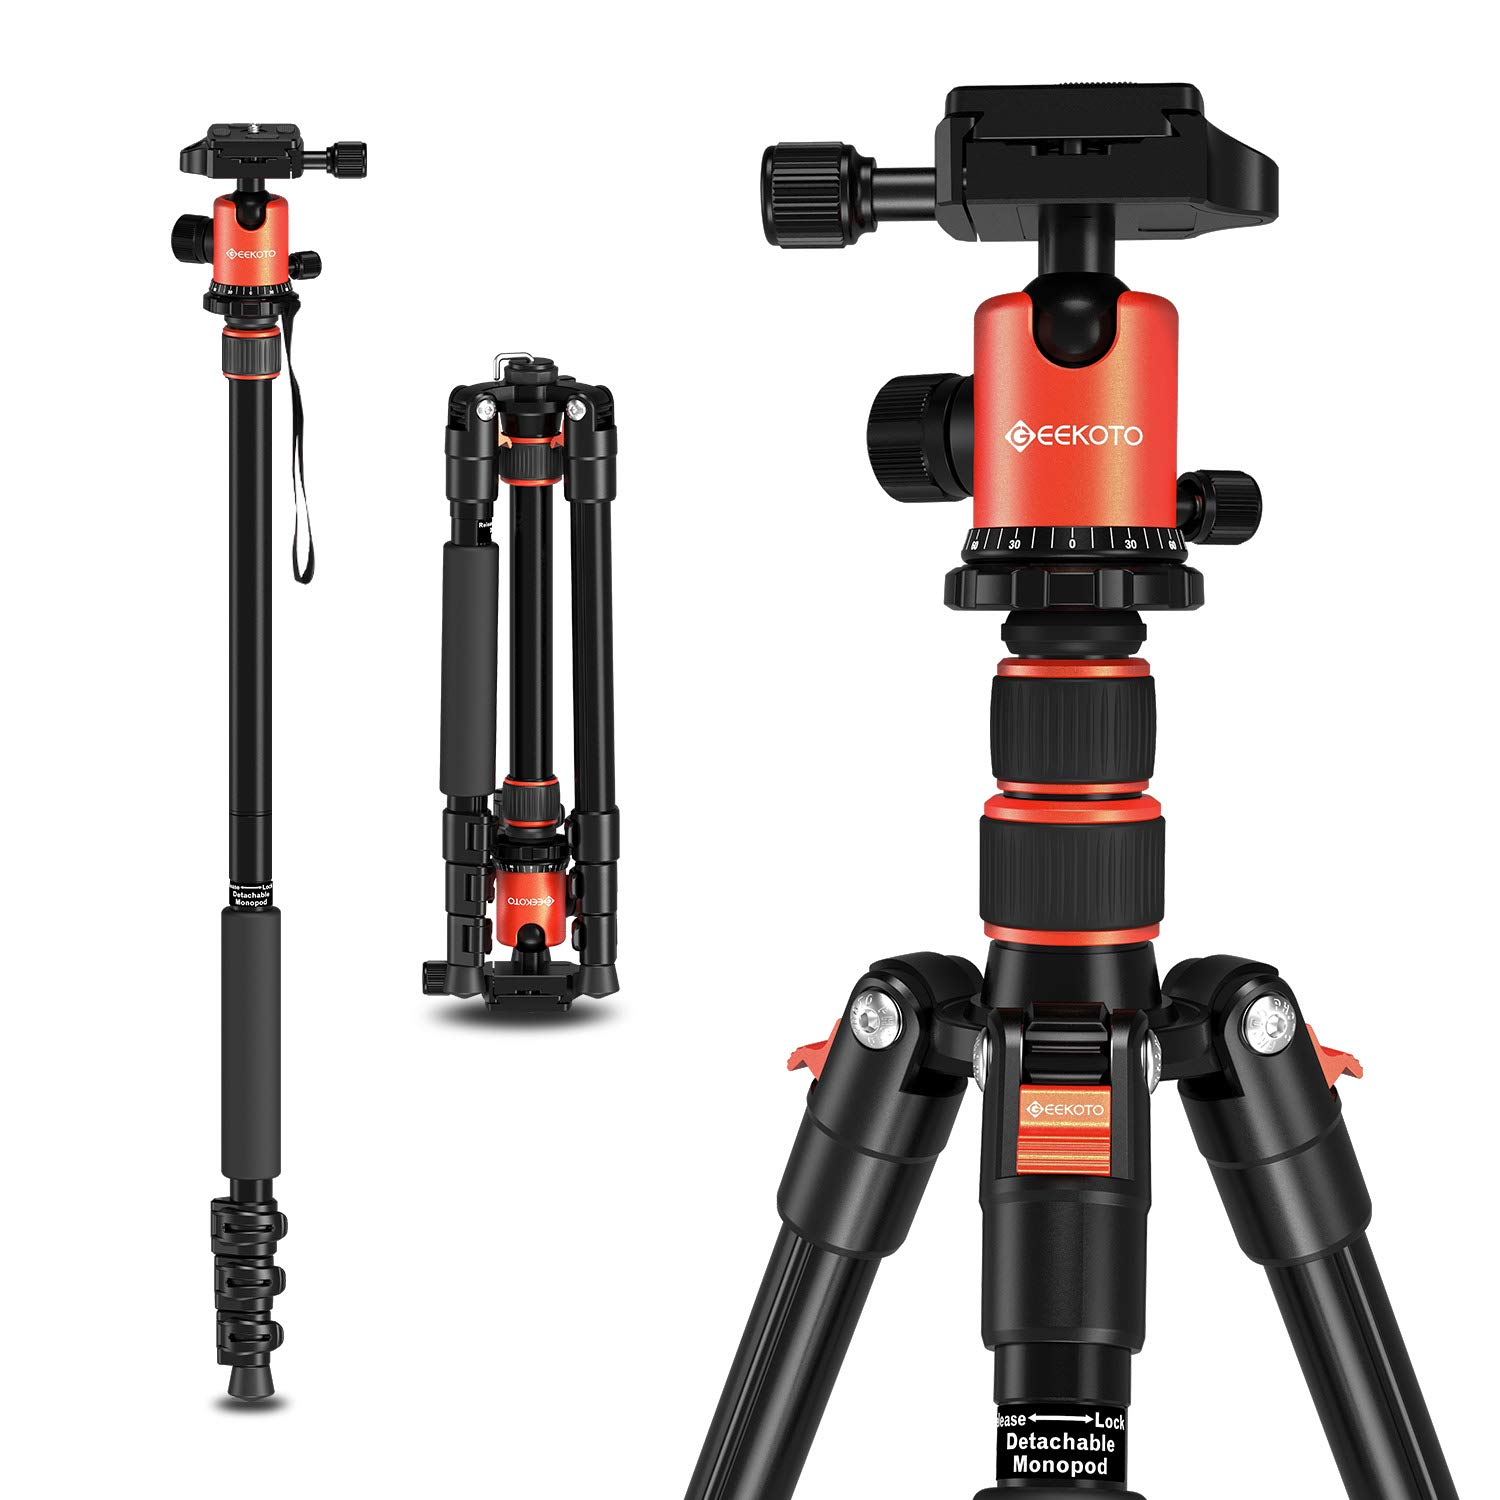 Geekoto Tripod, Camera Tripod for DSLR, Compact 58'' Aluminum Tripod with 360 Degree Ball Head and 8kgs Load for Travel and Work